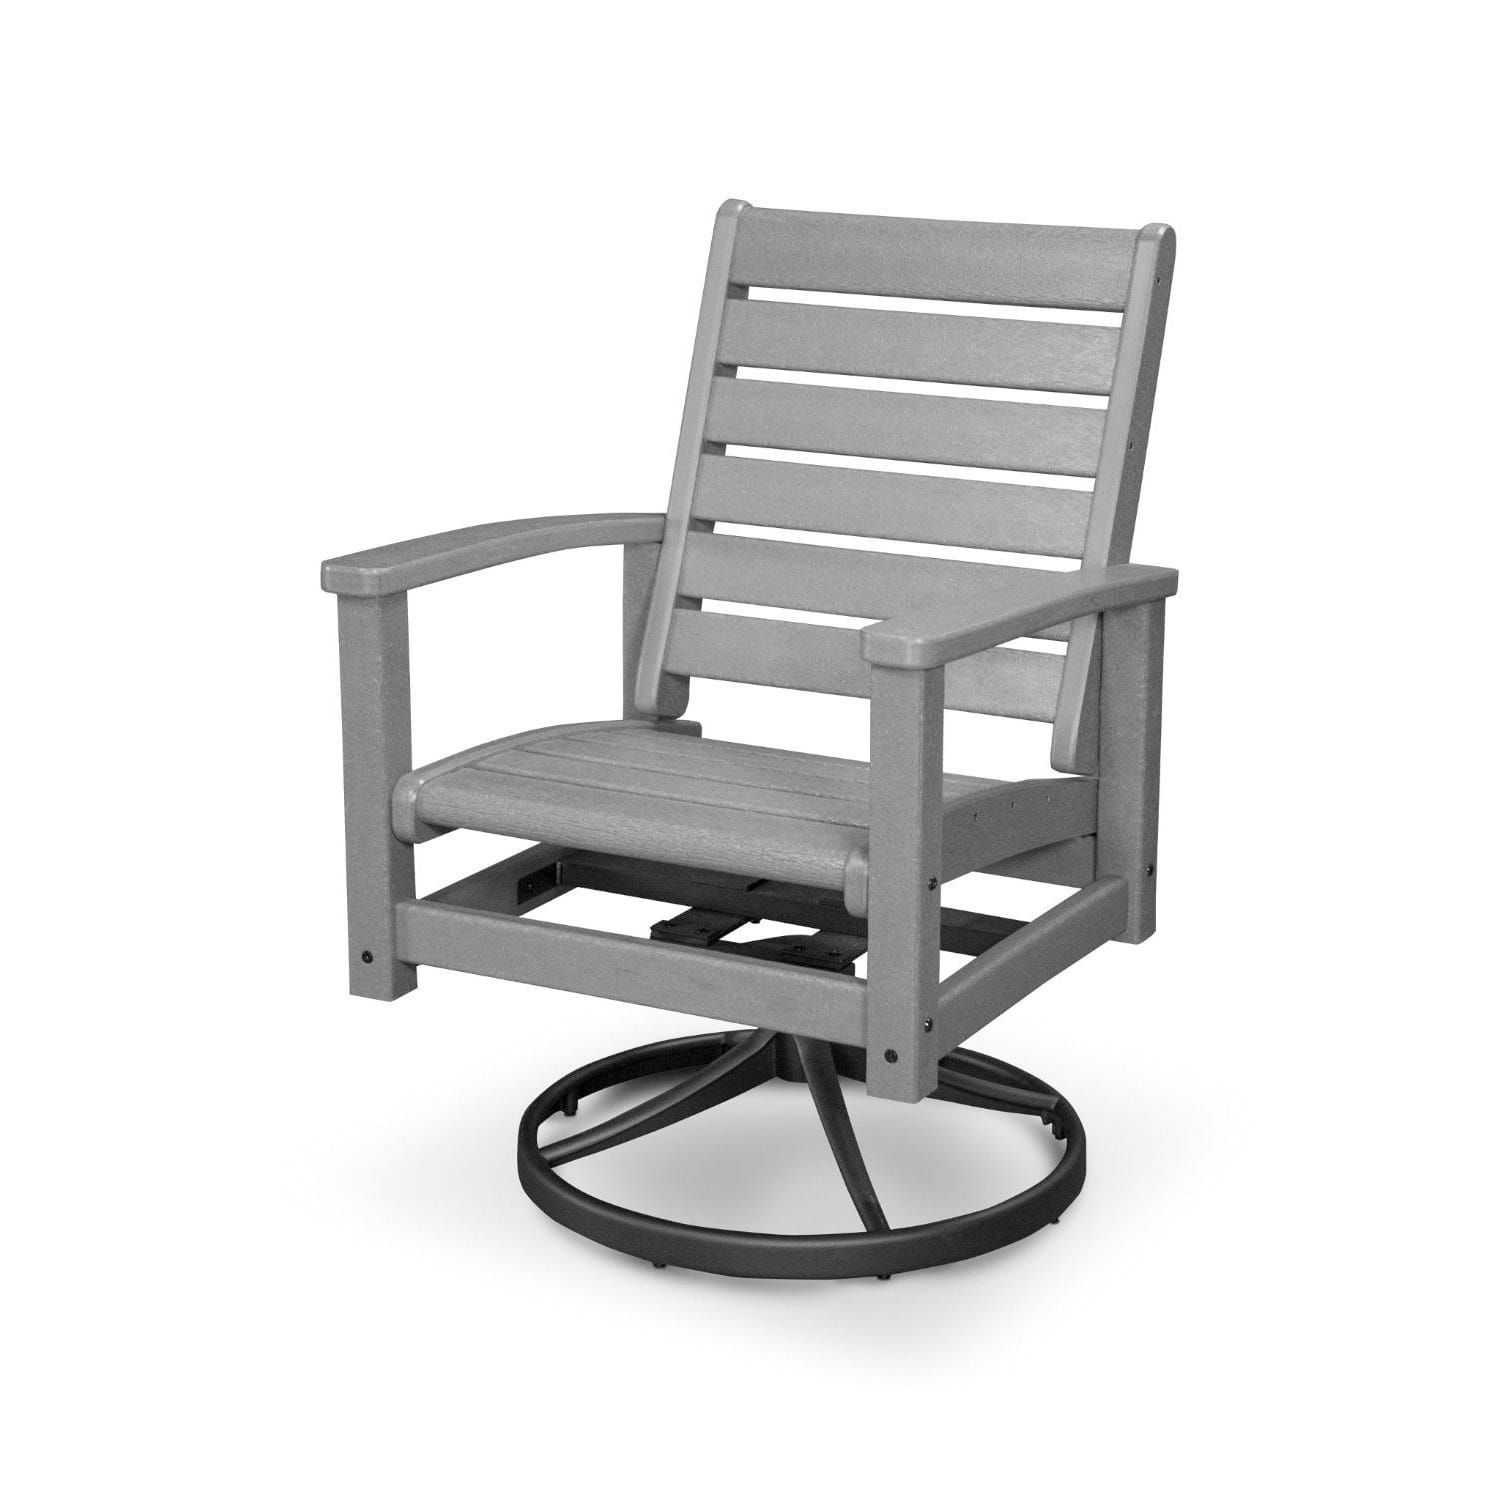 Incredible Polywood Signature Outdoor Swivel Rocking Chair Black Ibusinesslaw Wood Chair Design Ideas Ibusinesslaworg